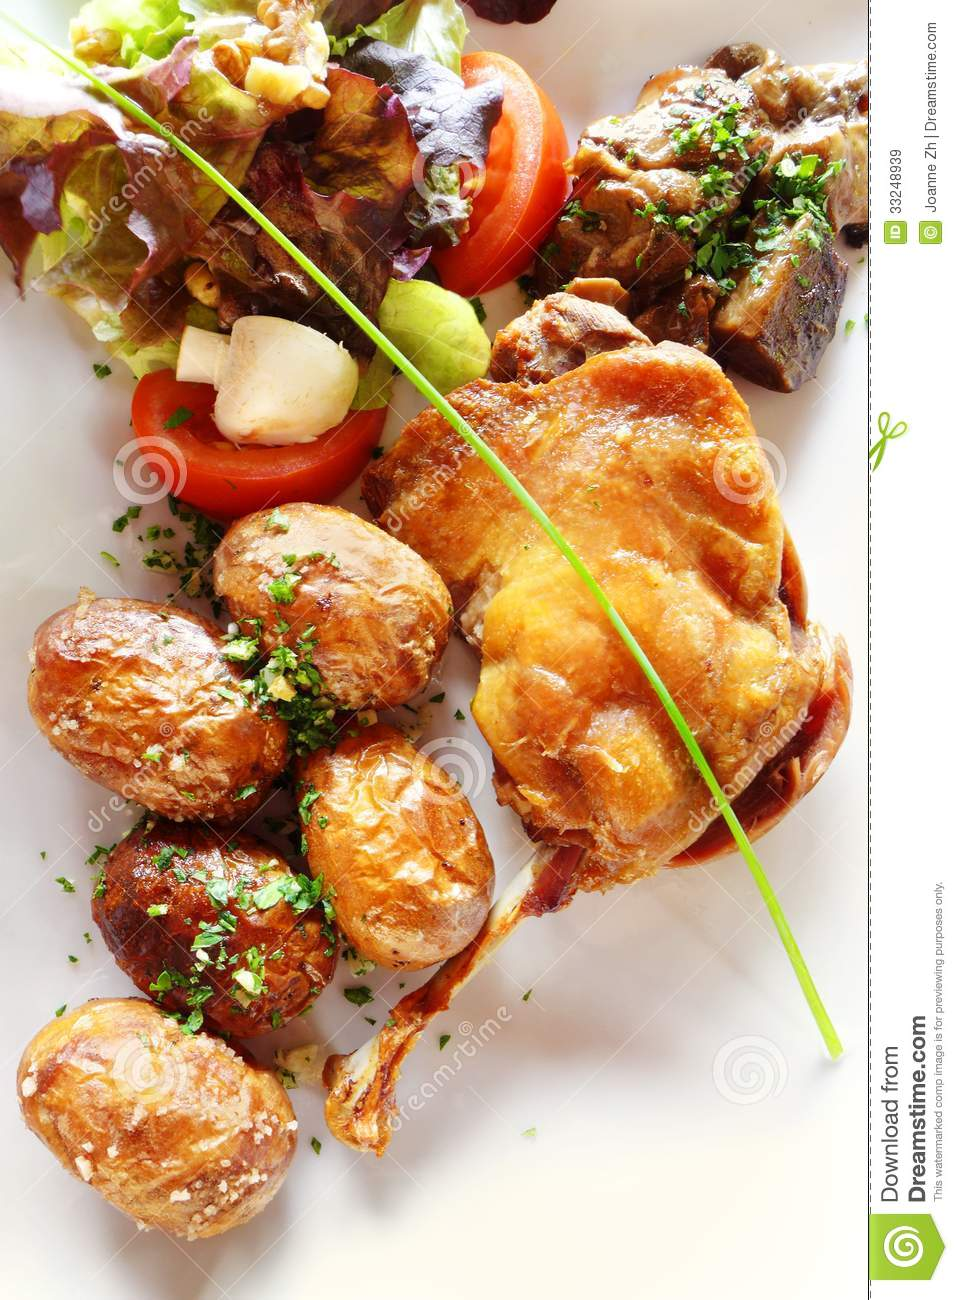 Duck confit french cuisine royalty free stock images for A french cuisine